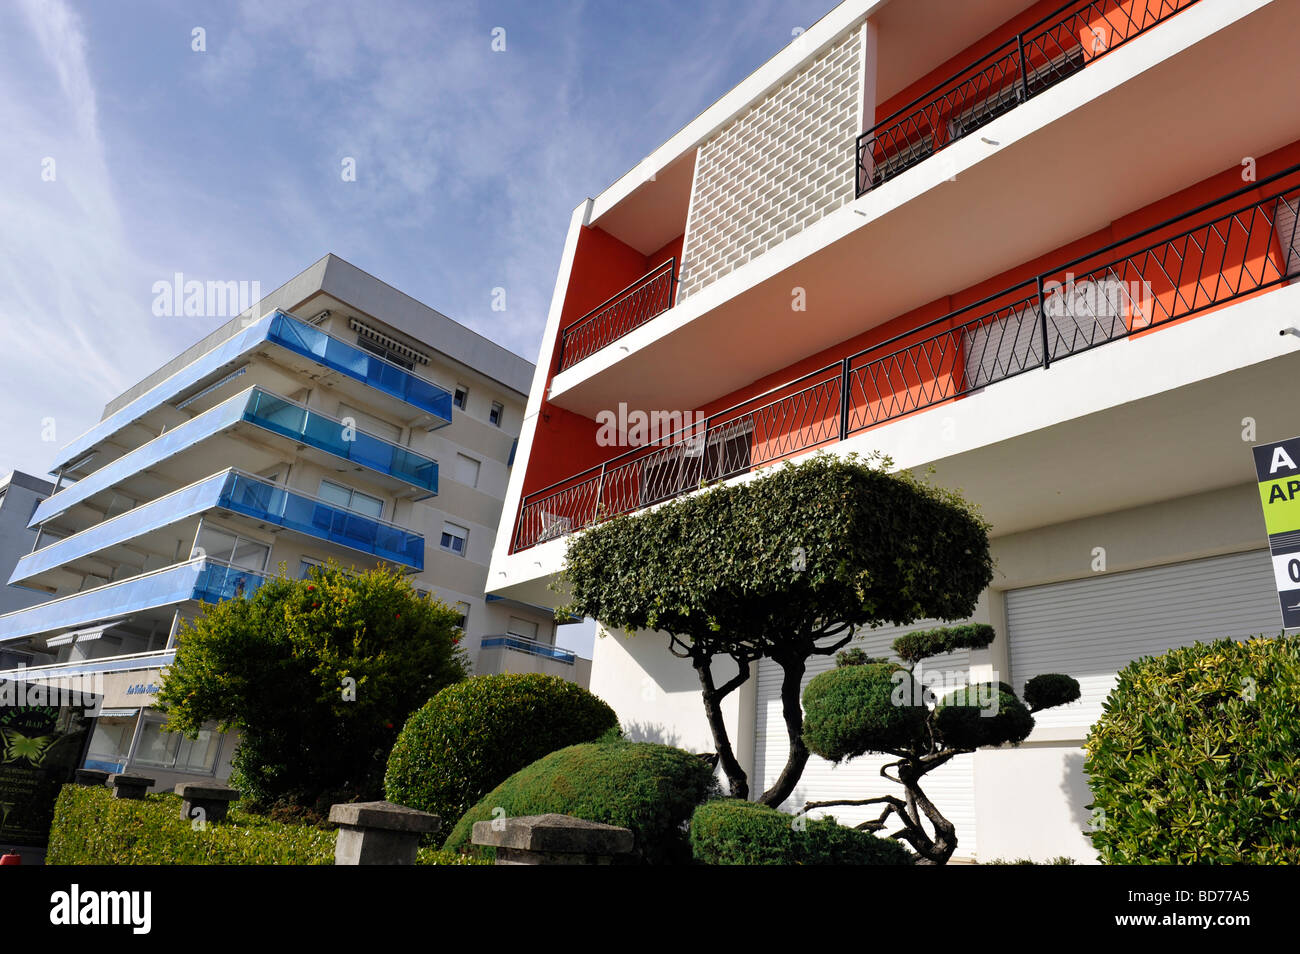 unusual sixties style architecture on the beach front at Royan - Stock Image